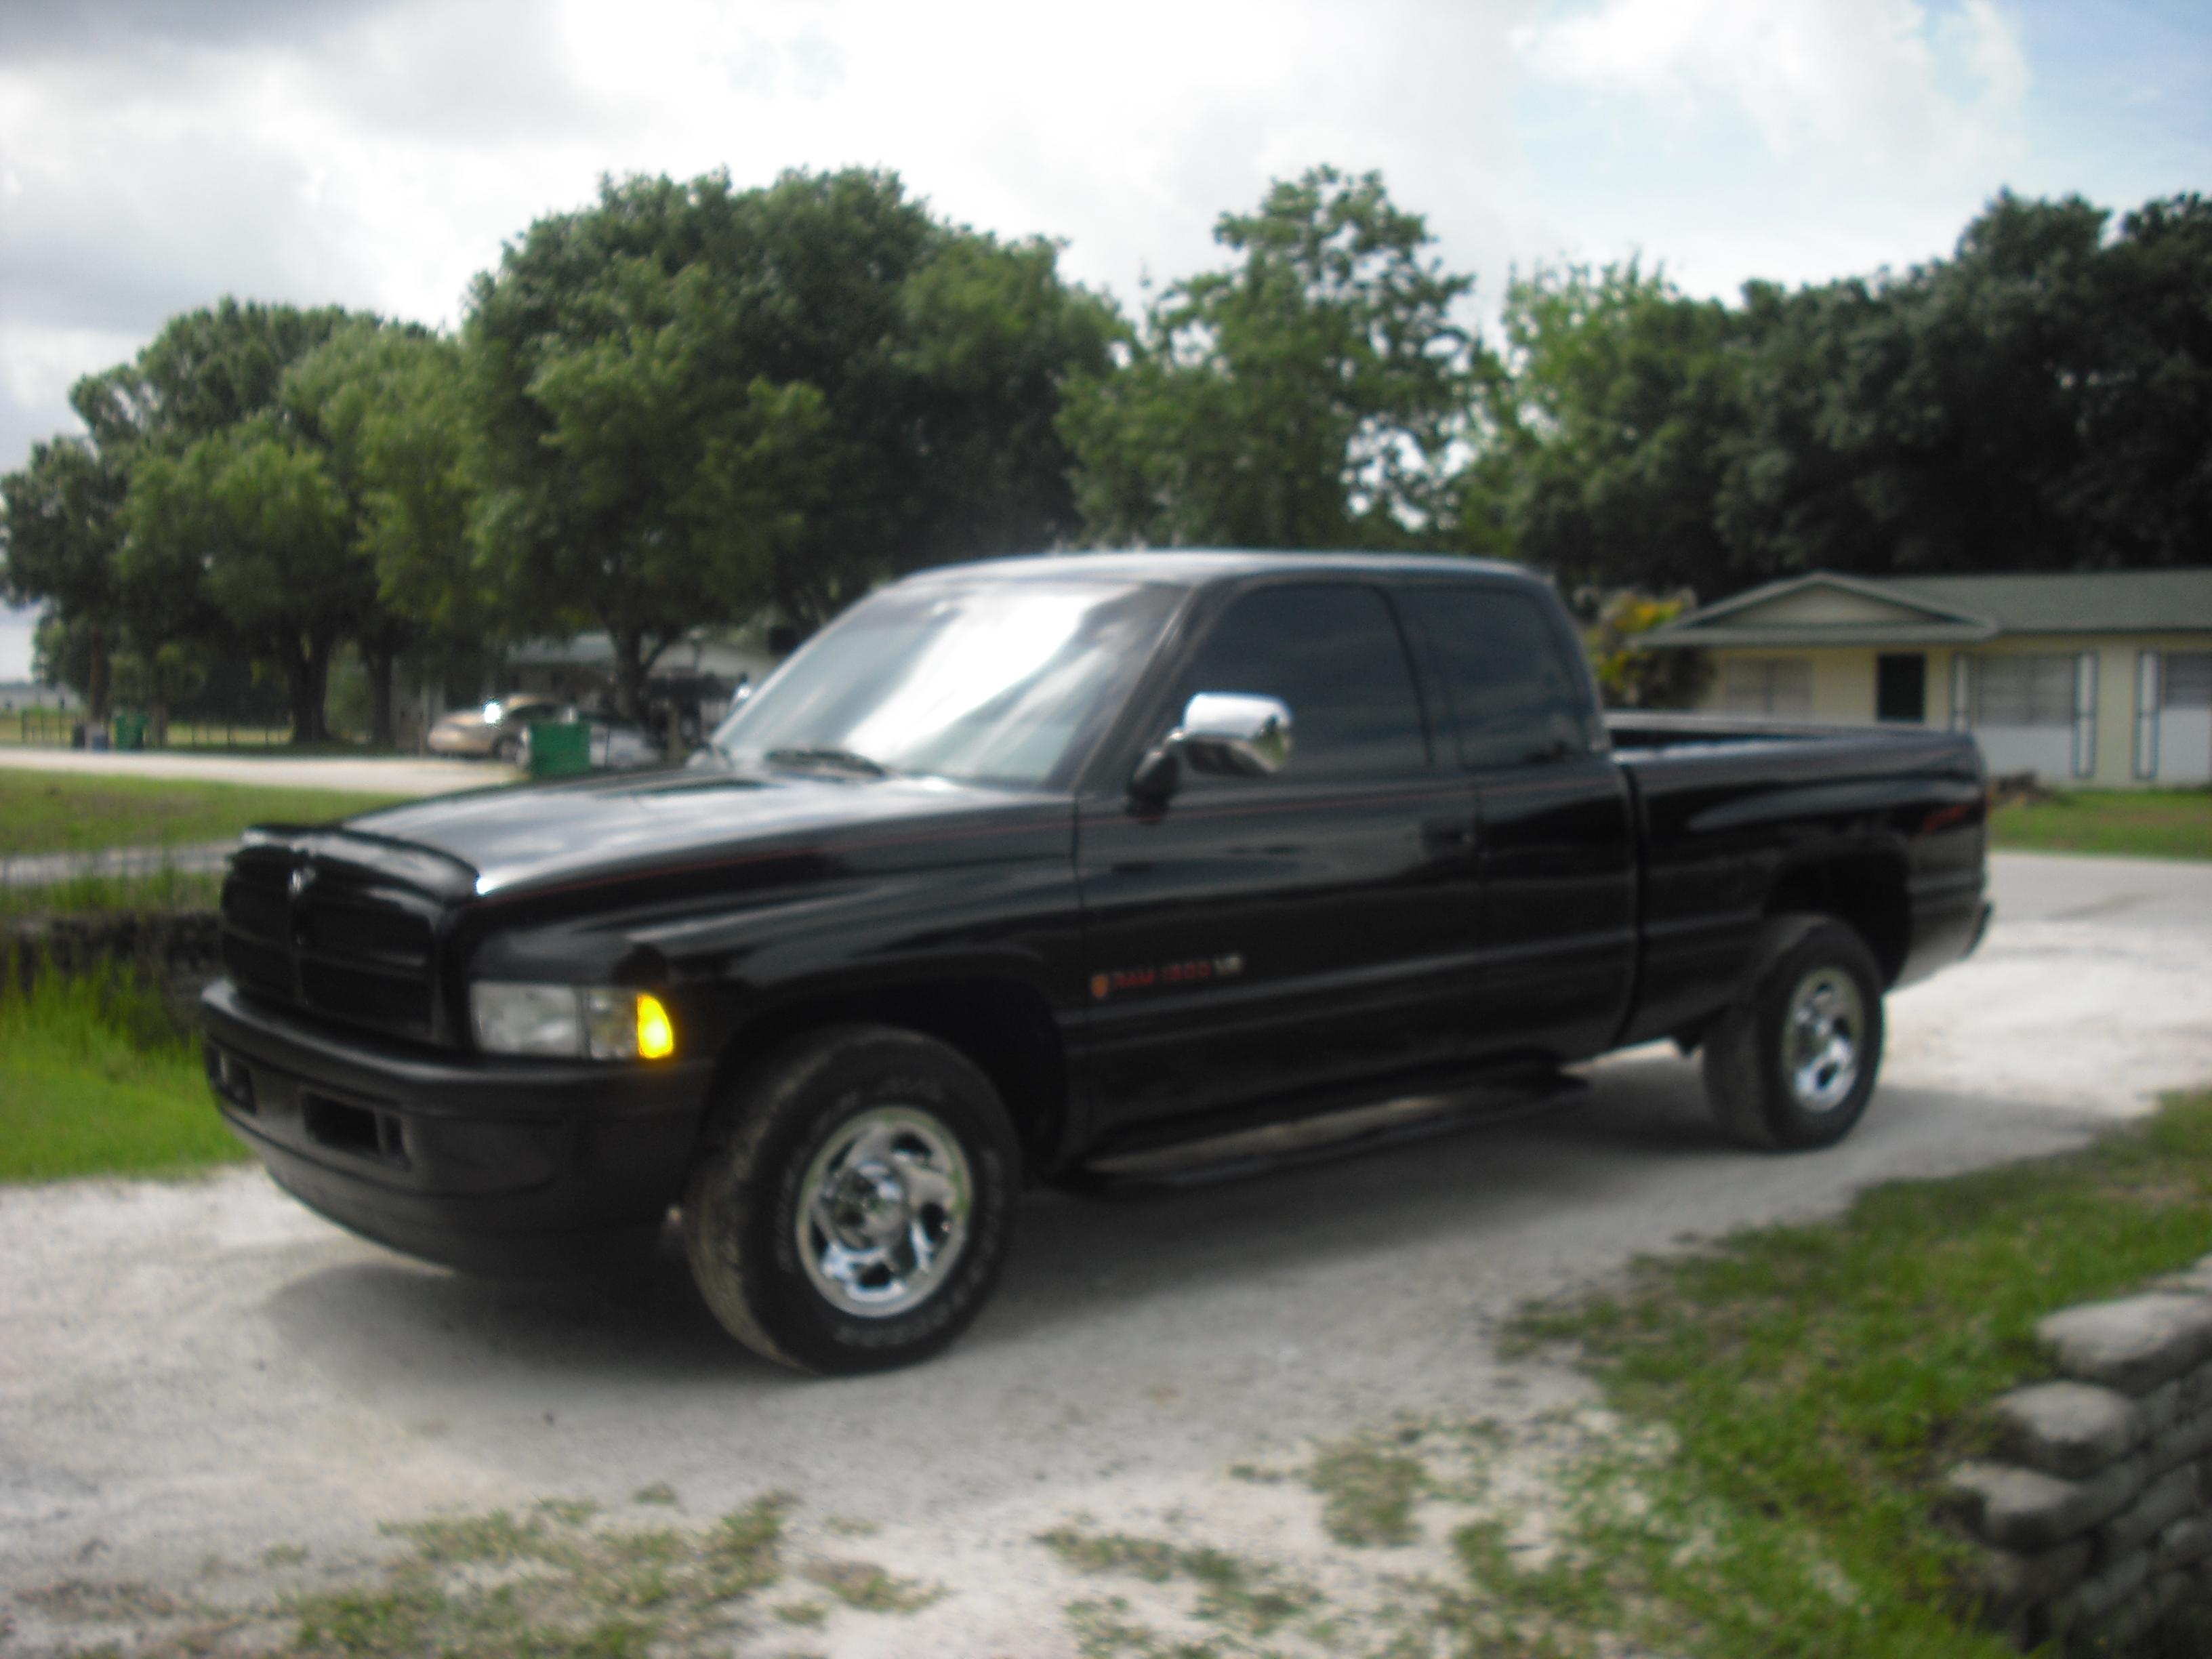 ridinnaram 1996 dodge ram 1500 regular cab specs photos modification info at cardomain. Black Bedroom Furniture Sets. Home Design Ideas